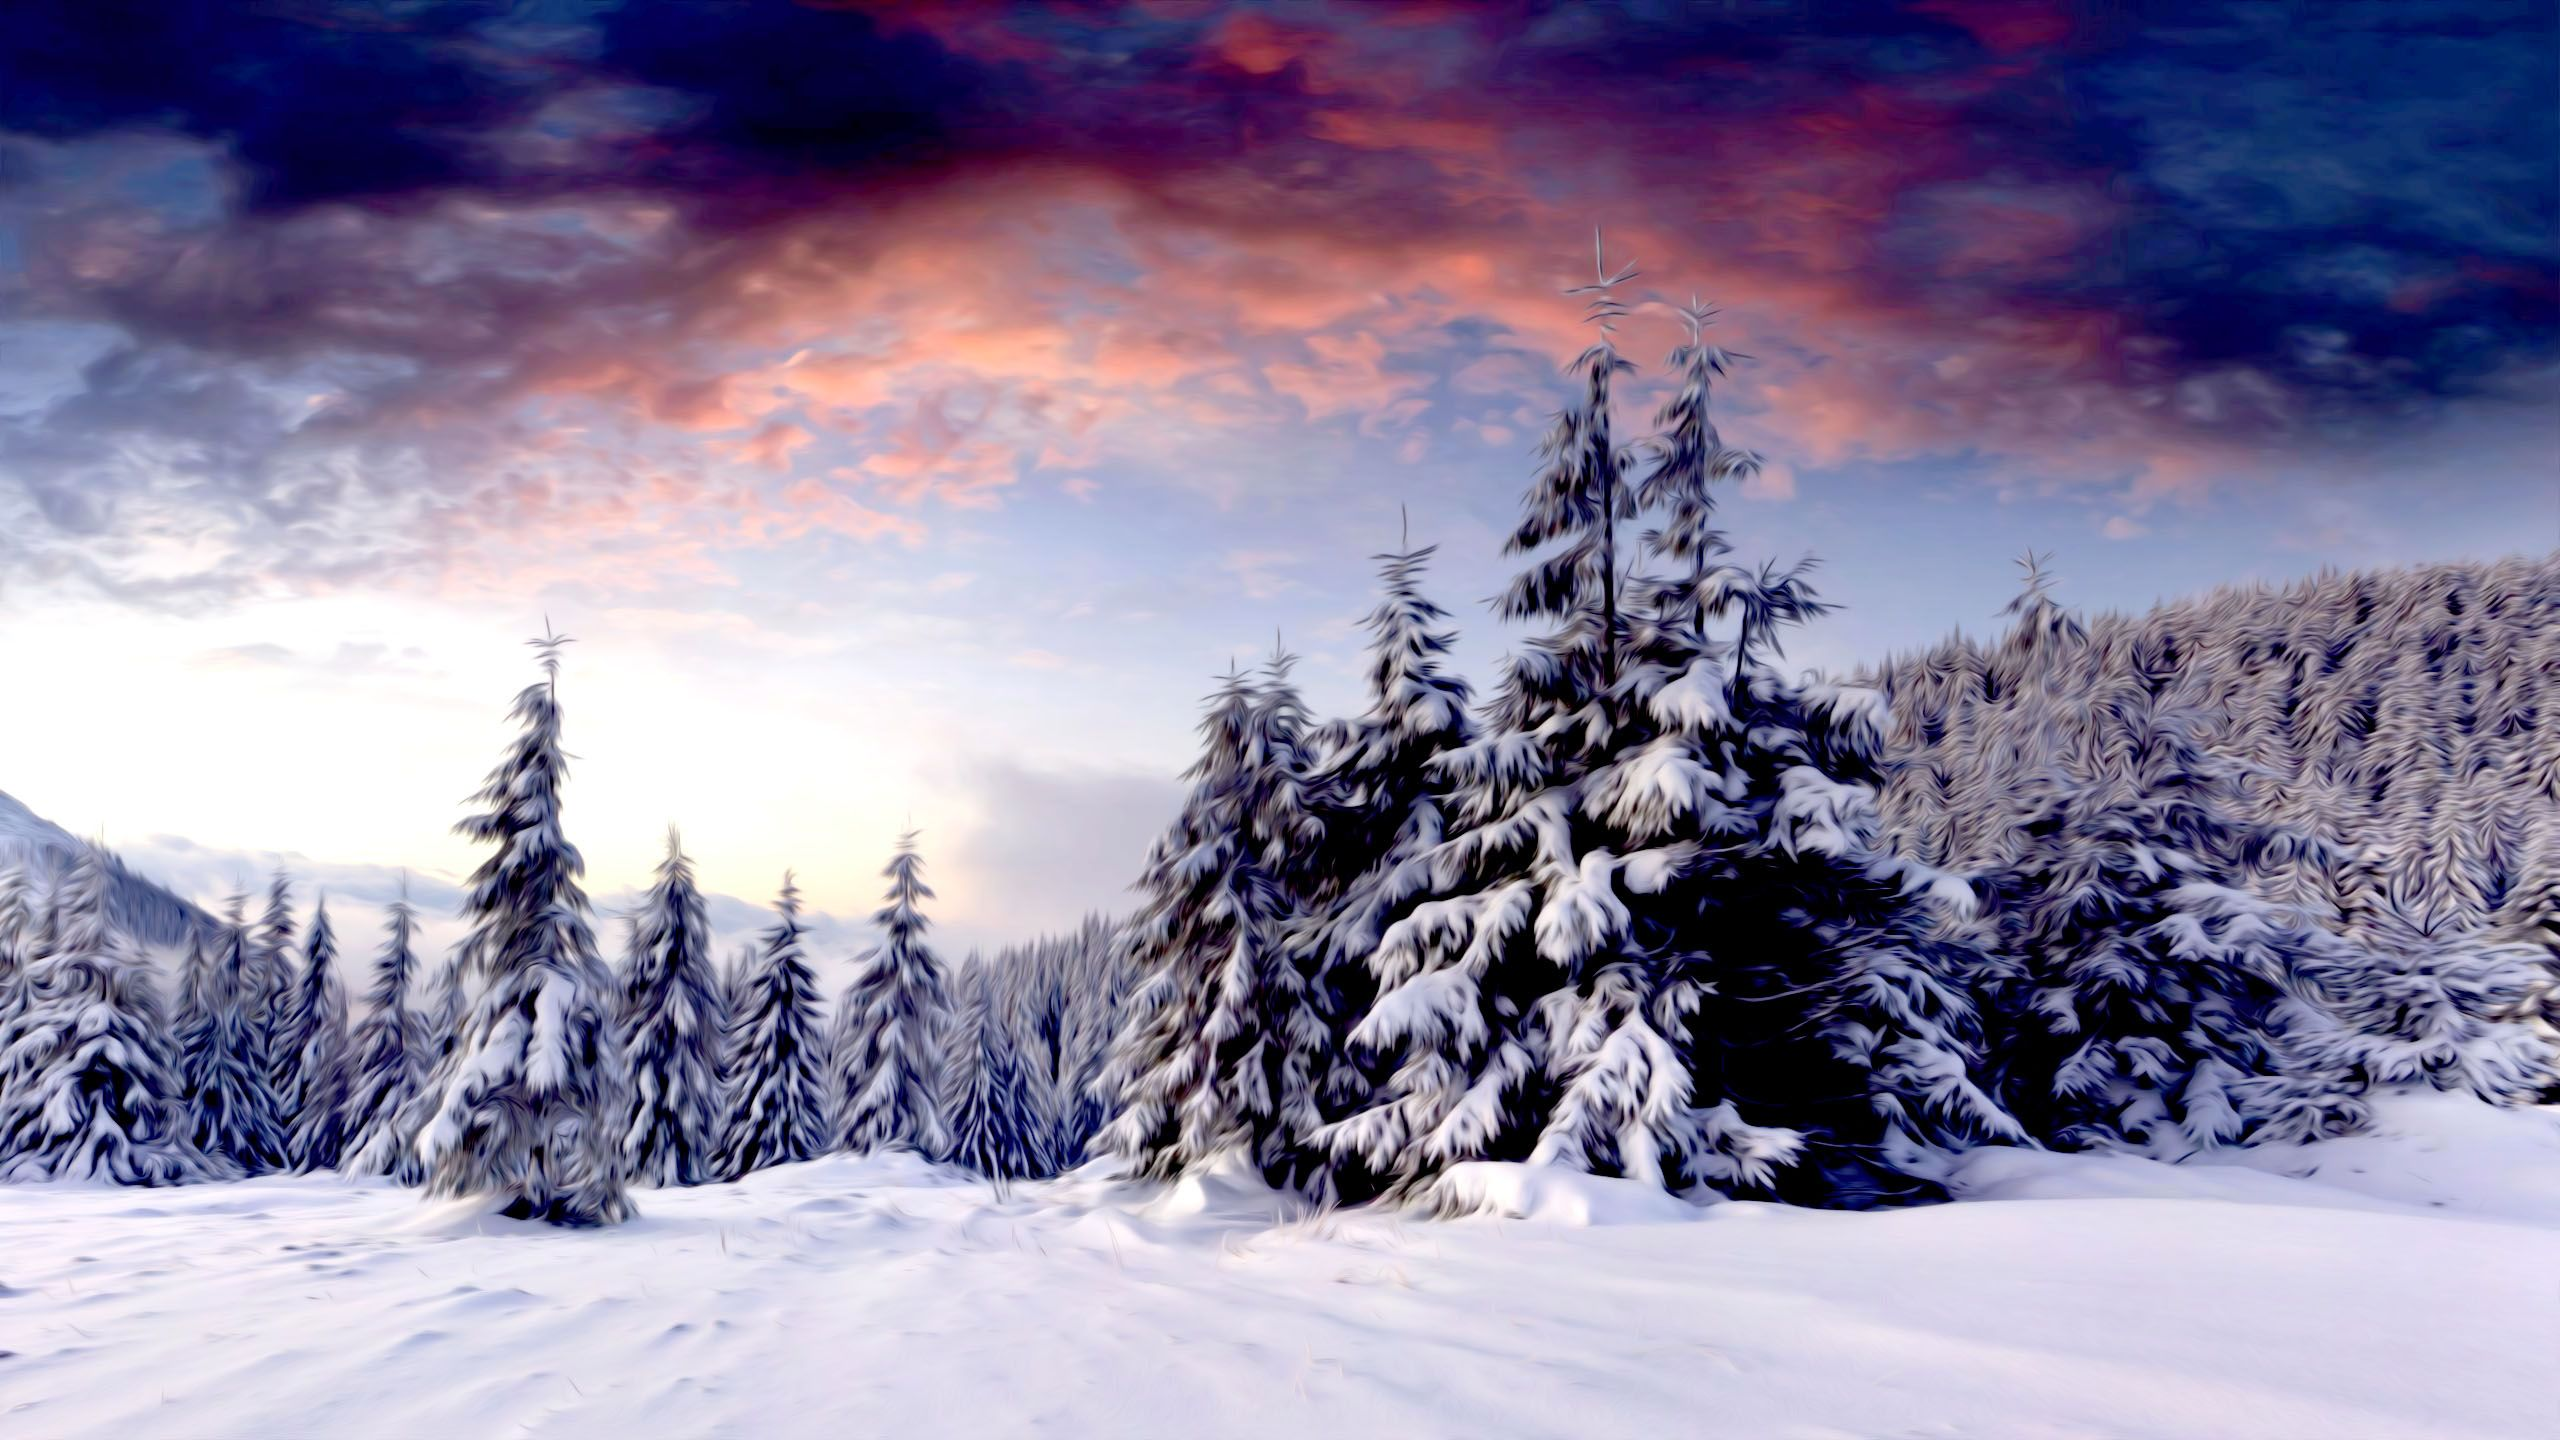 winter scenery images